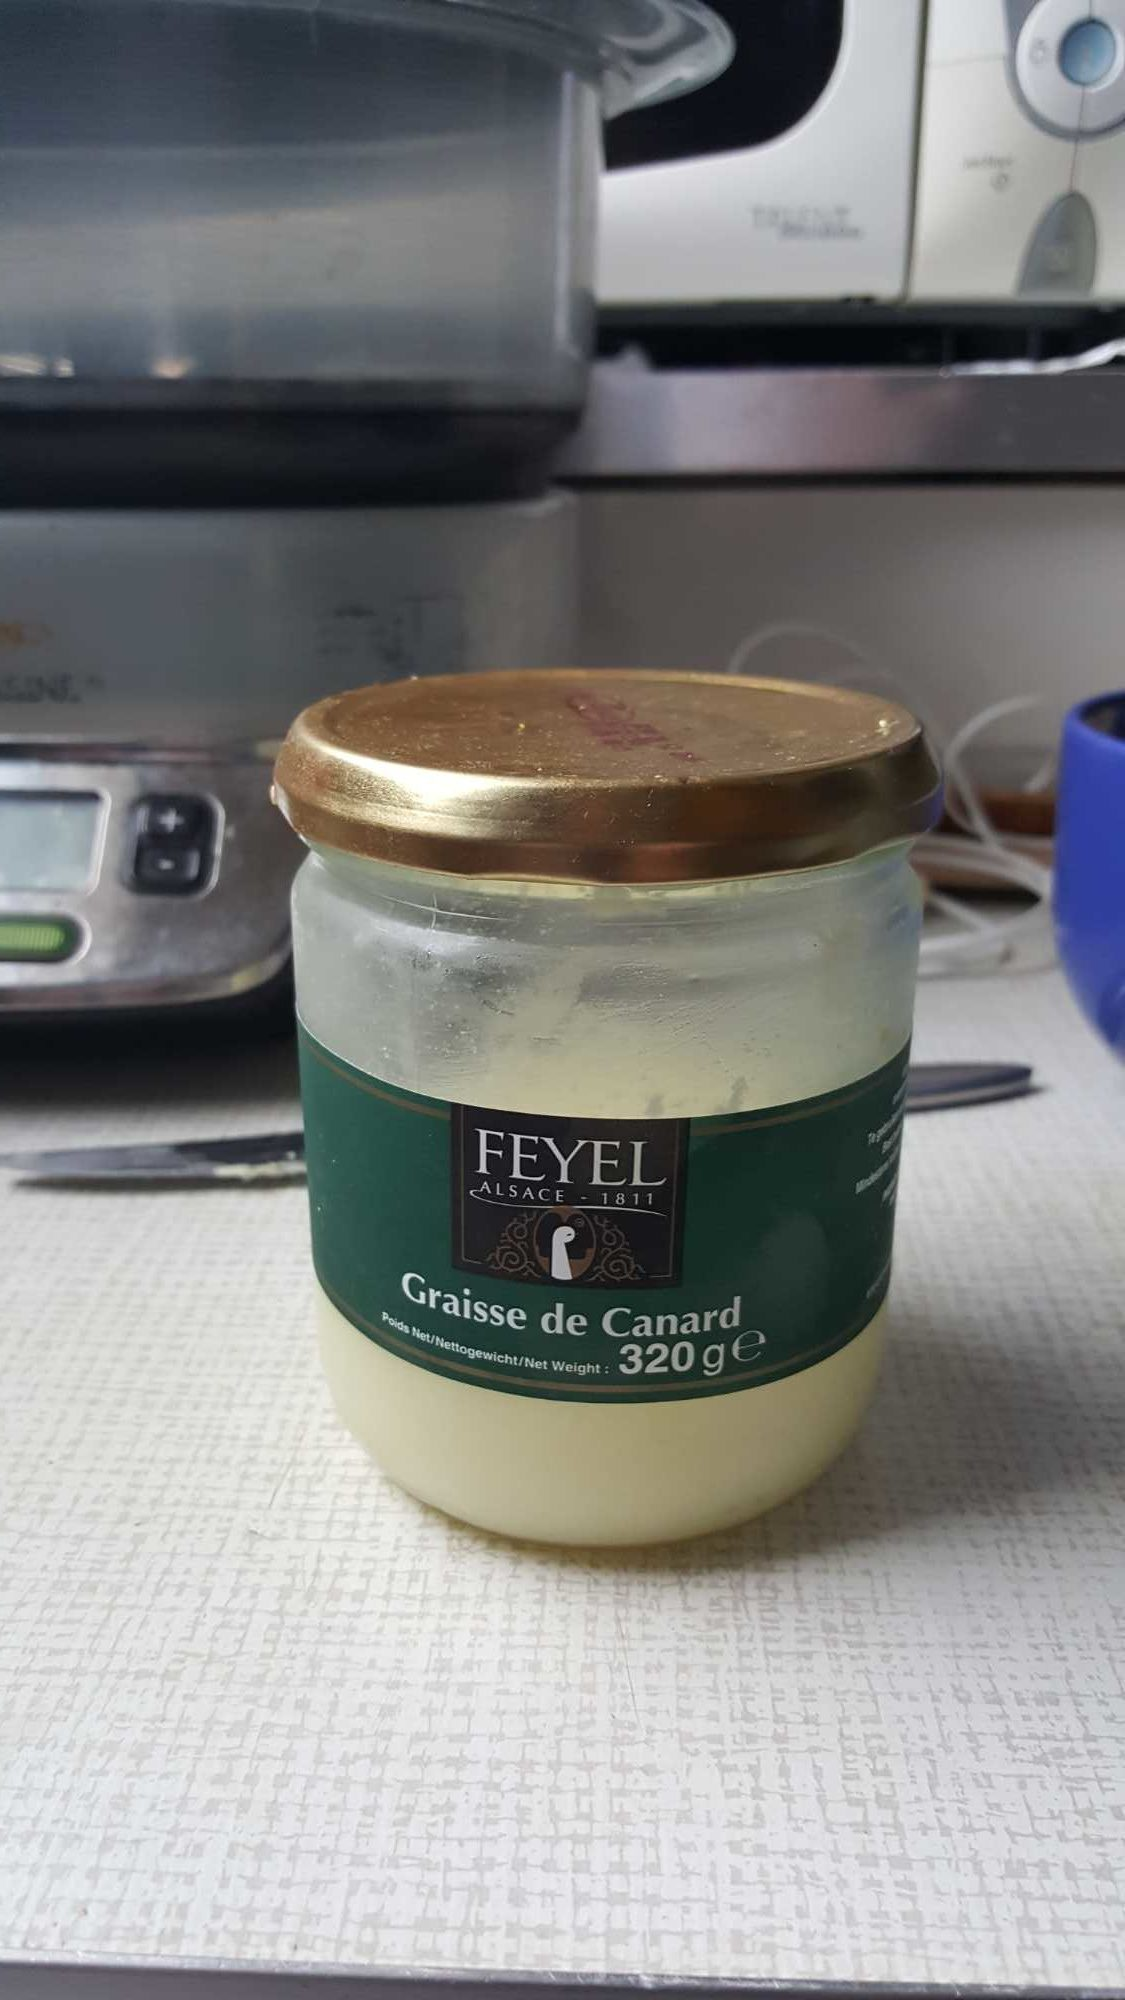 Graisse de canard bocal Feyel - Product